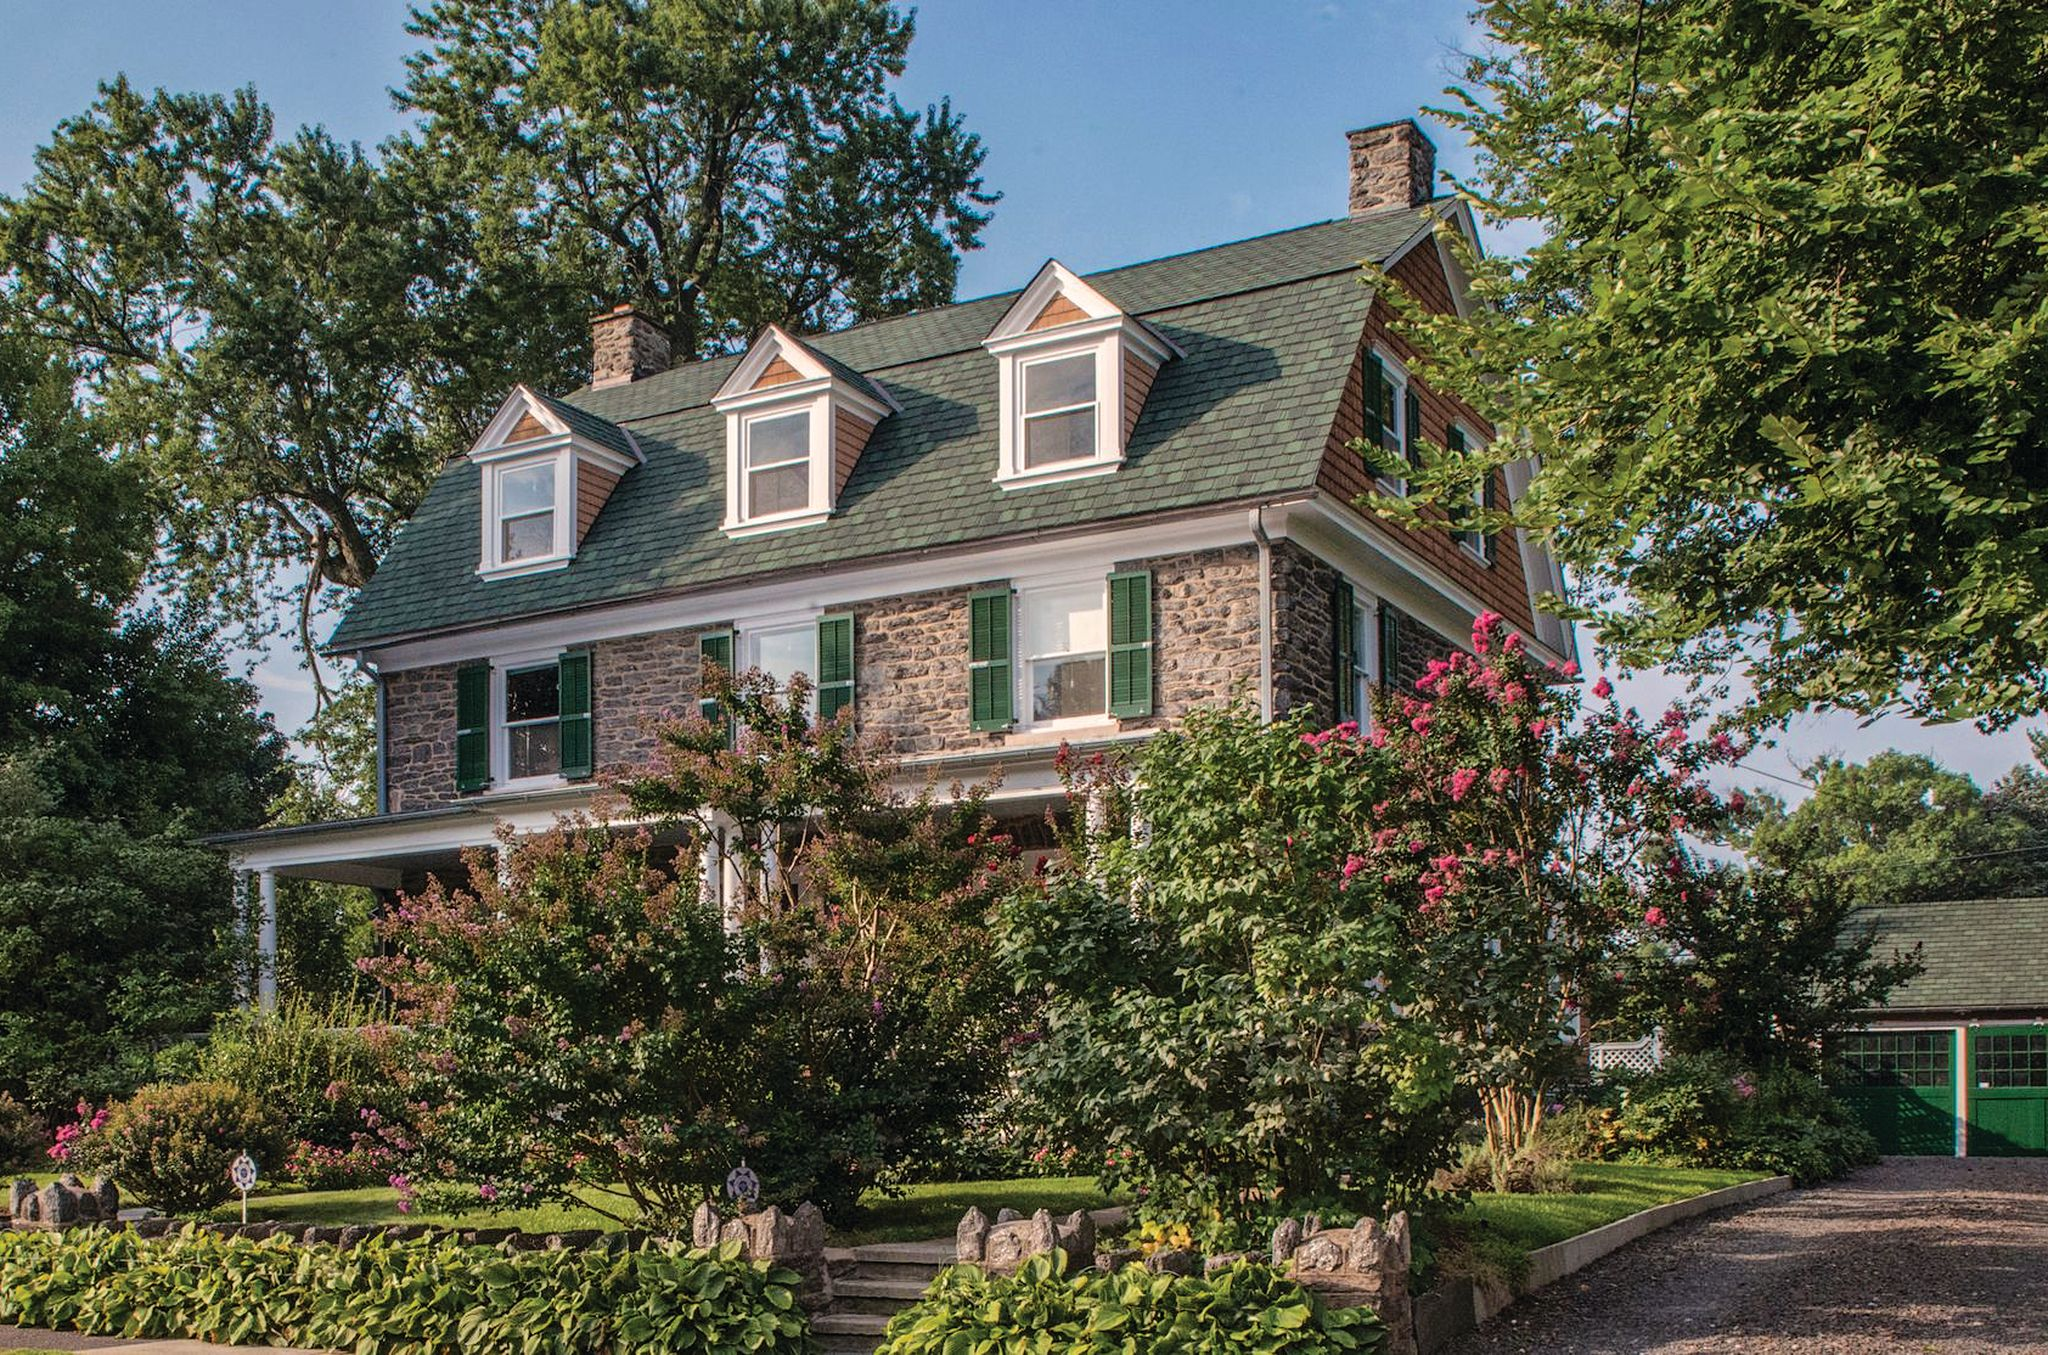 Real Estate 1903 Stone Dutch Colonial In Elkins Park Pa